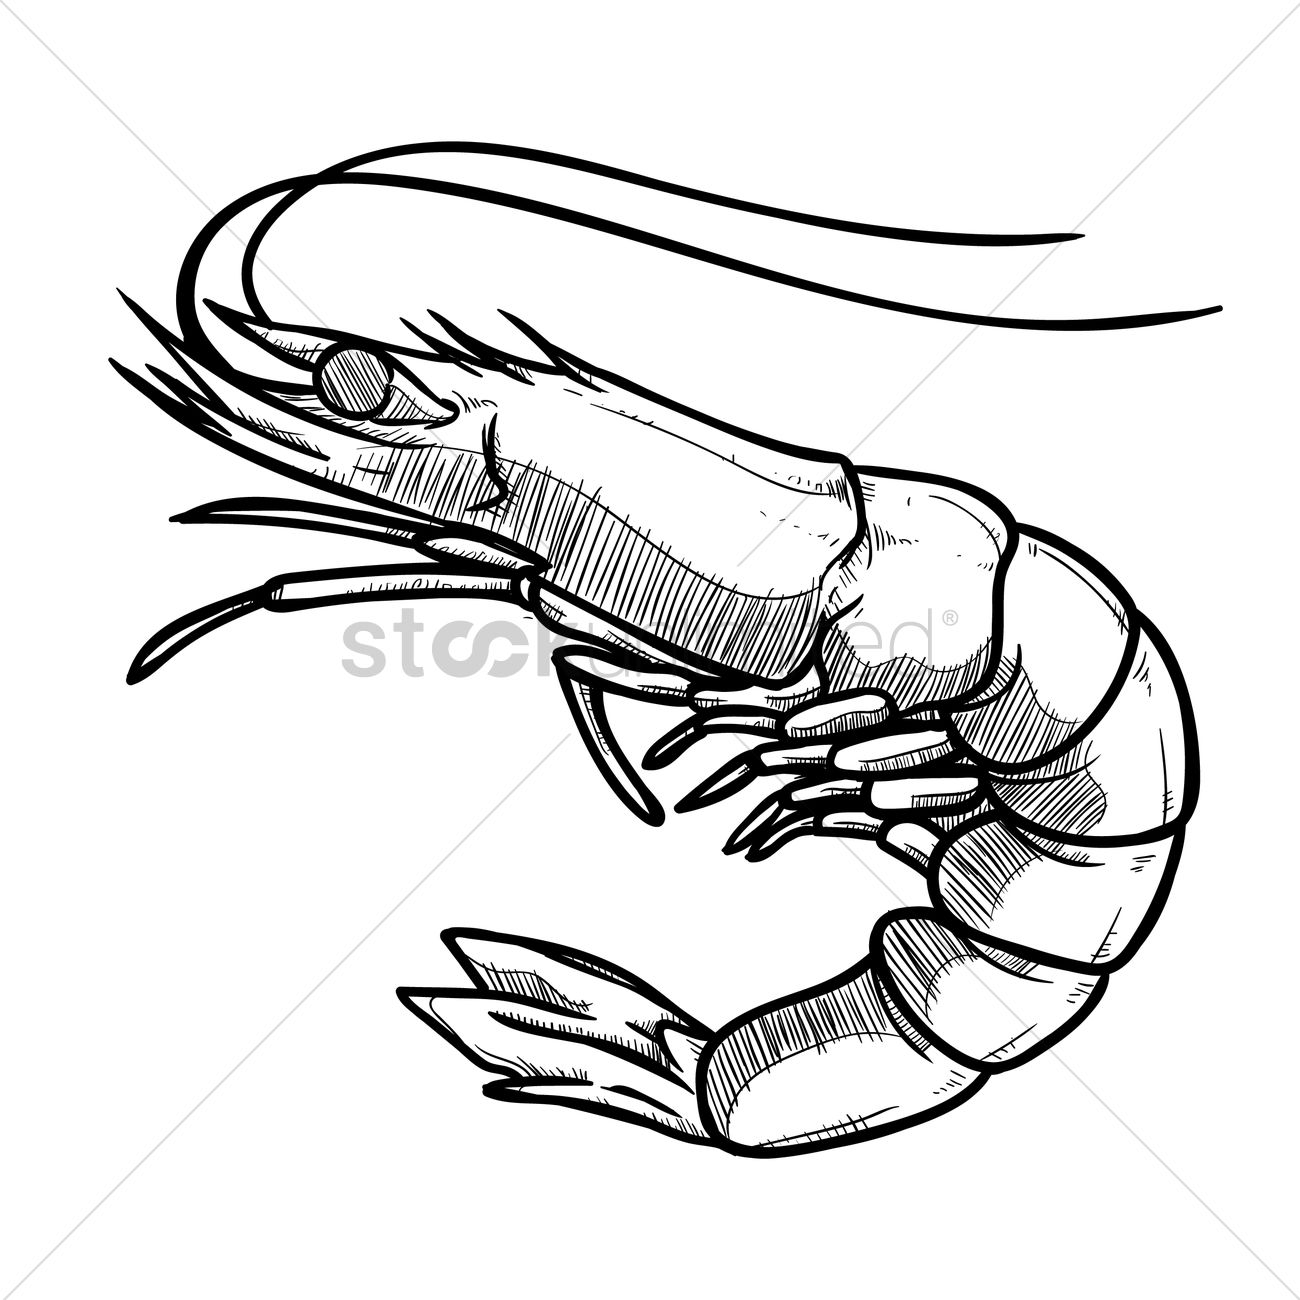 Prawn clipart black and white 5 » Clipart Station.